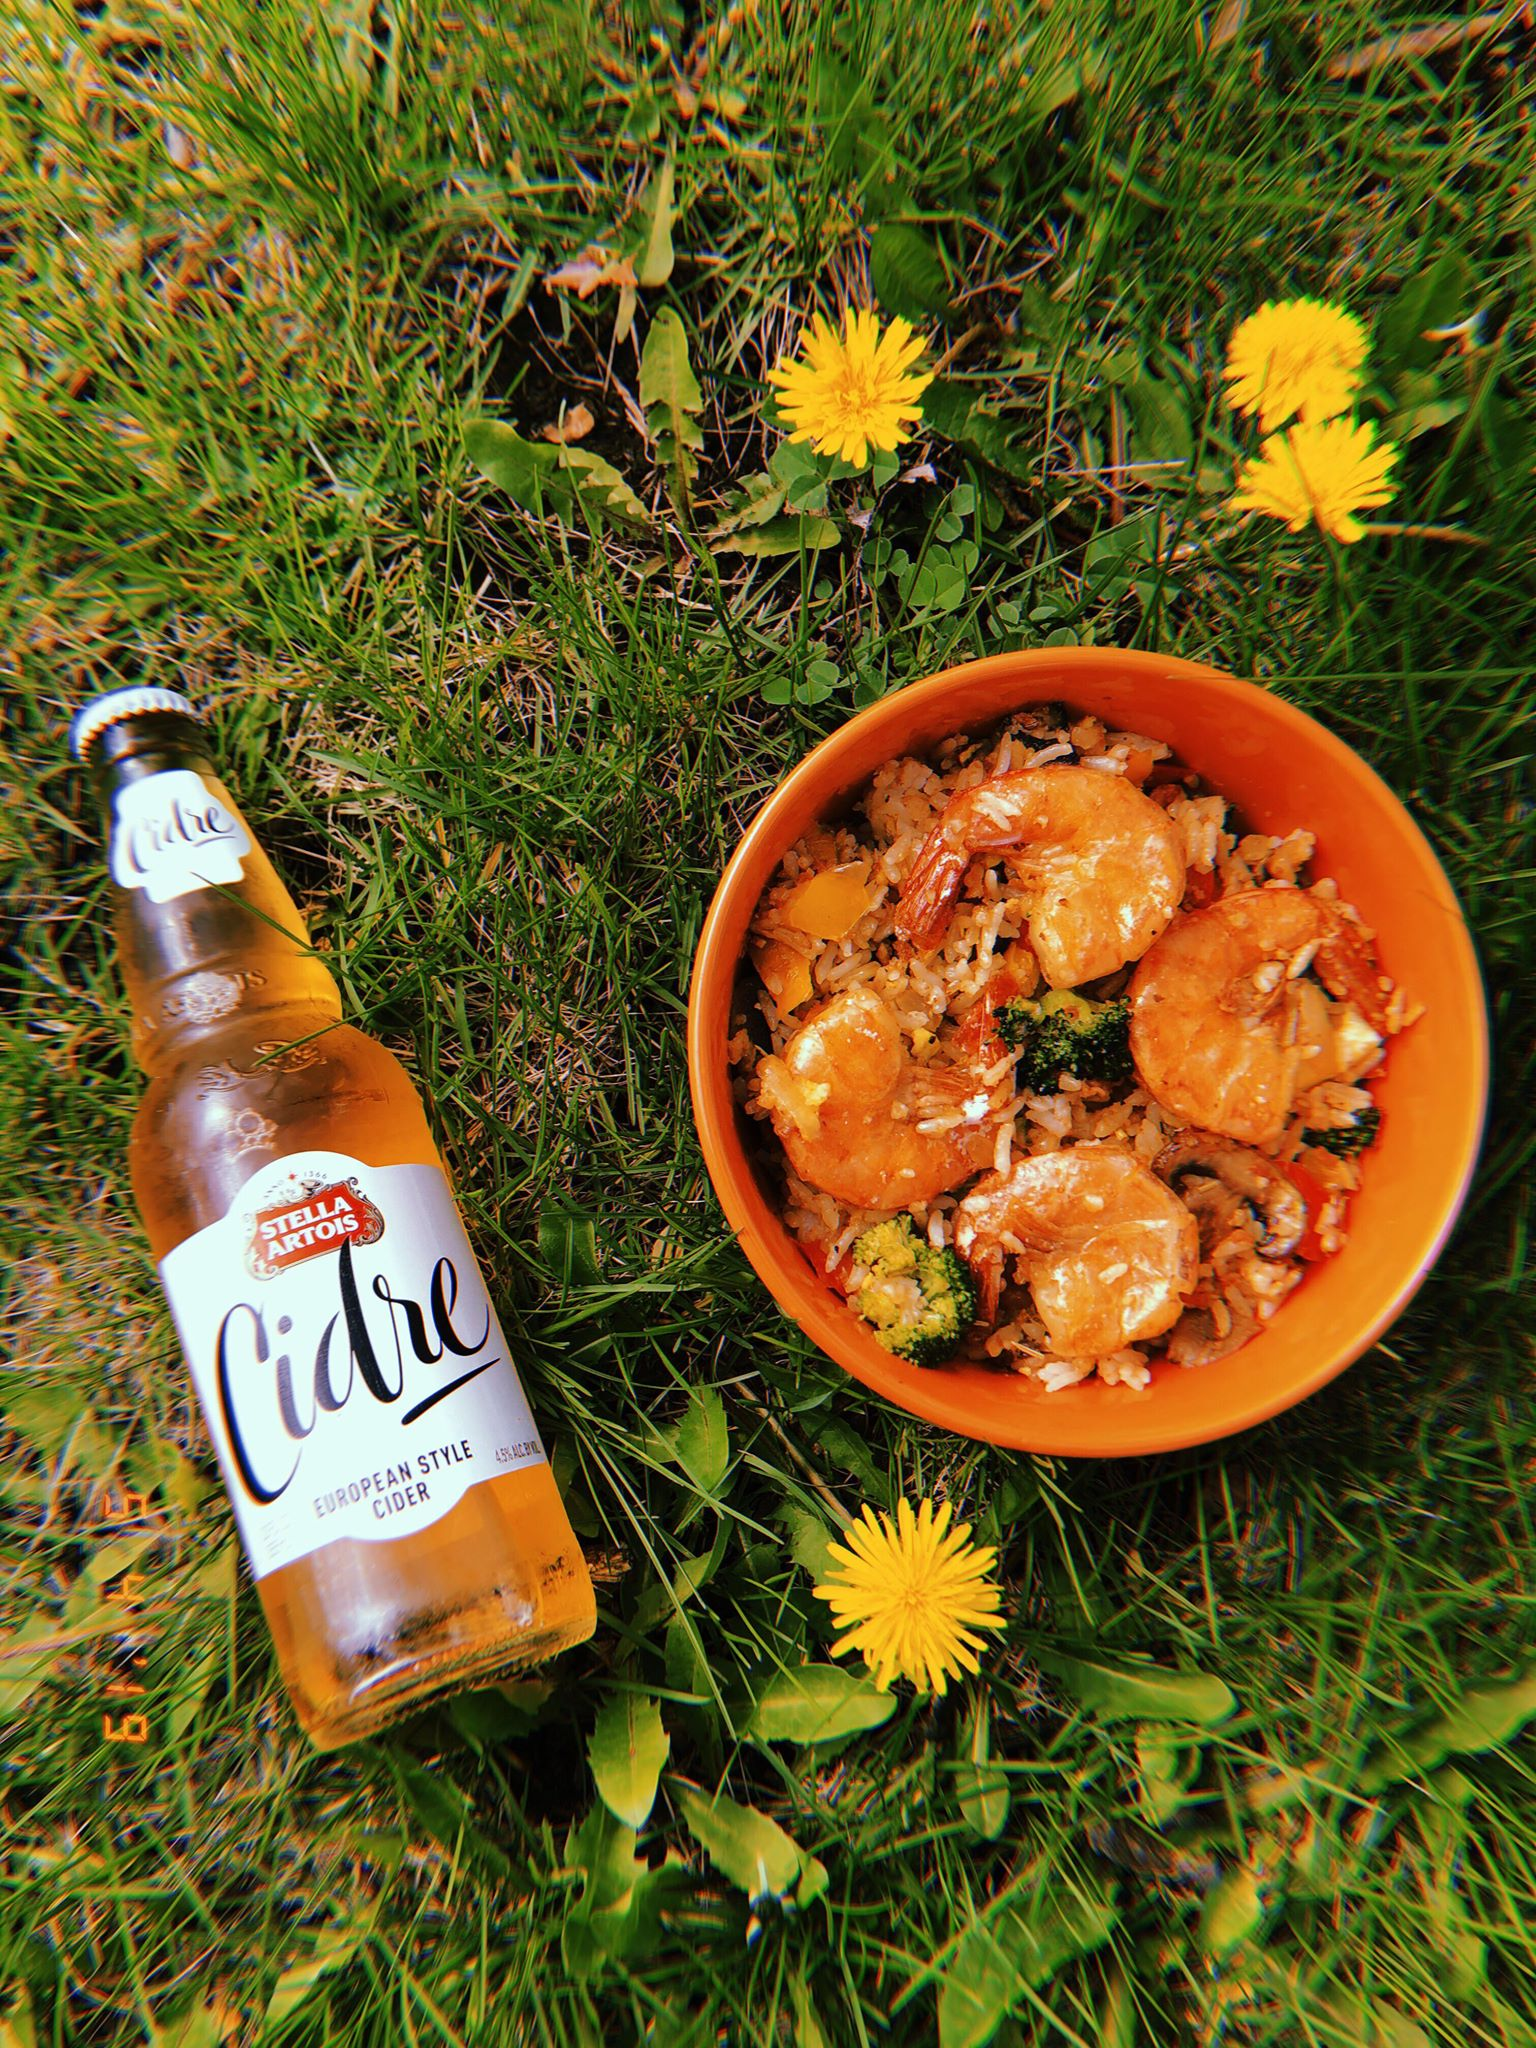 Shrimp and Corned Beef Fried Rice paired with Stella Artois (alcoholic) Cider. What a combo! 😋